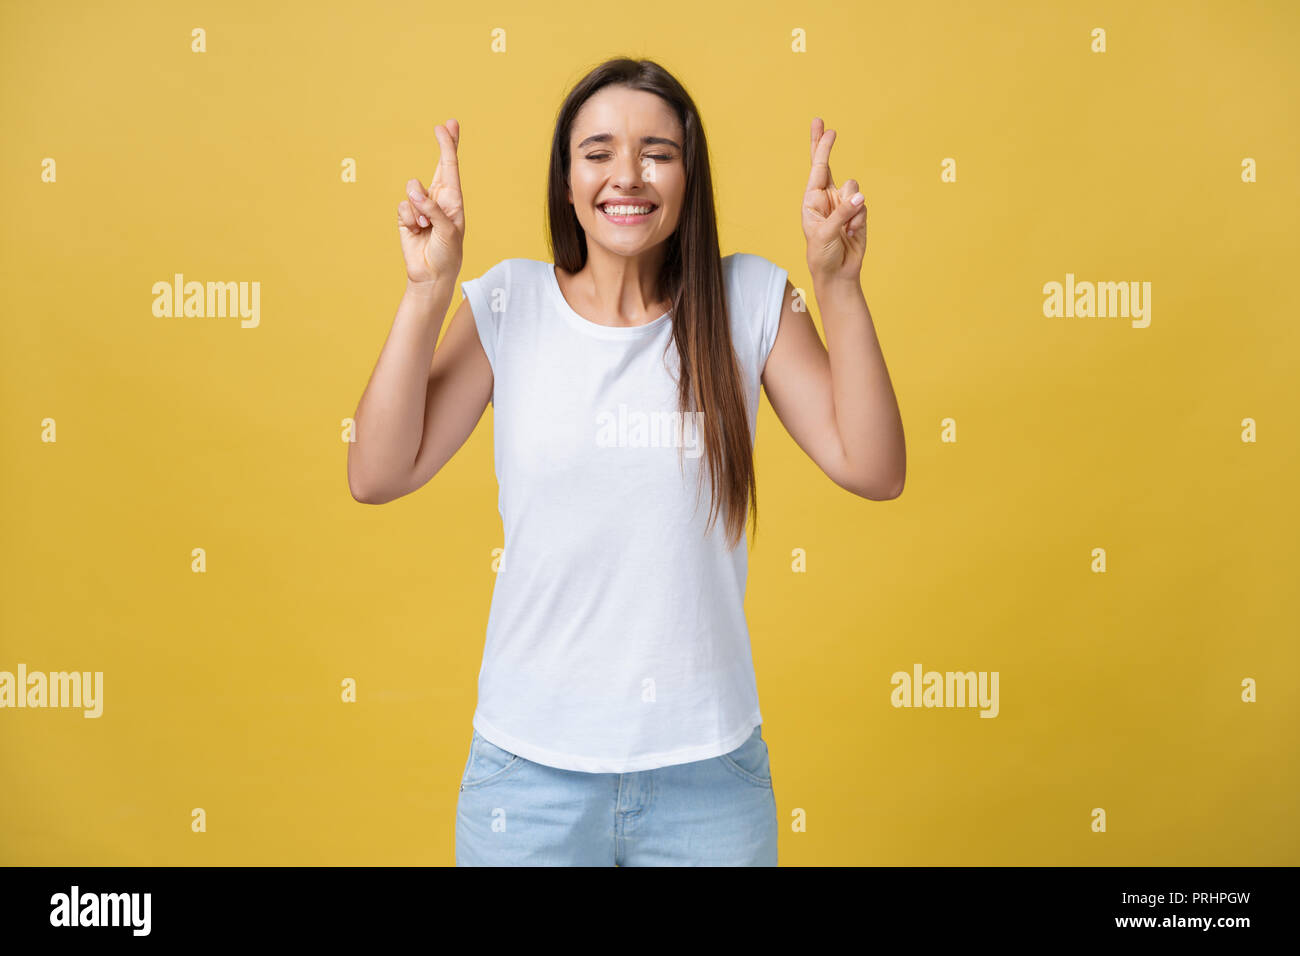 Intrigued woman in t-shirt praying with crossed fingers and looking away over yellow background - Stock Image